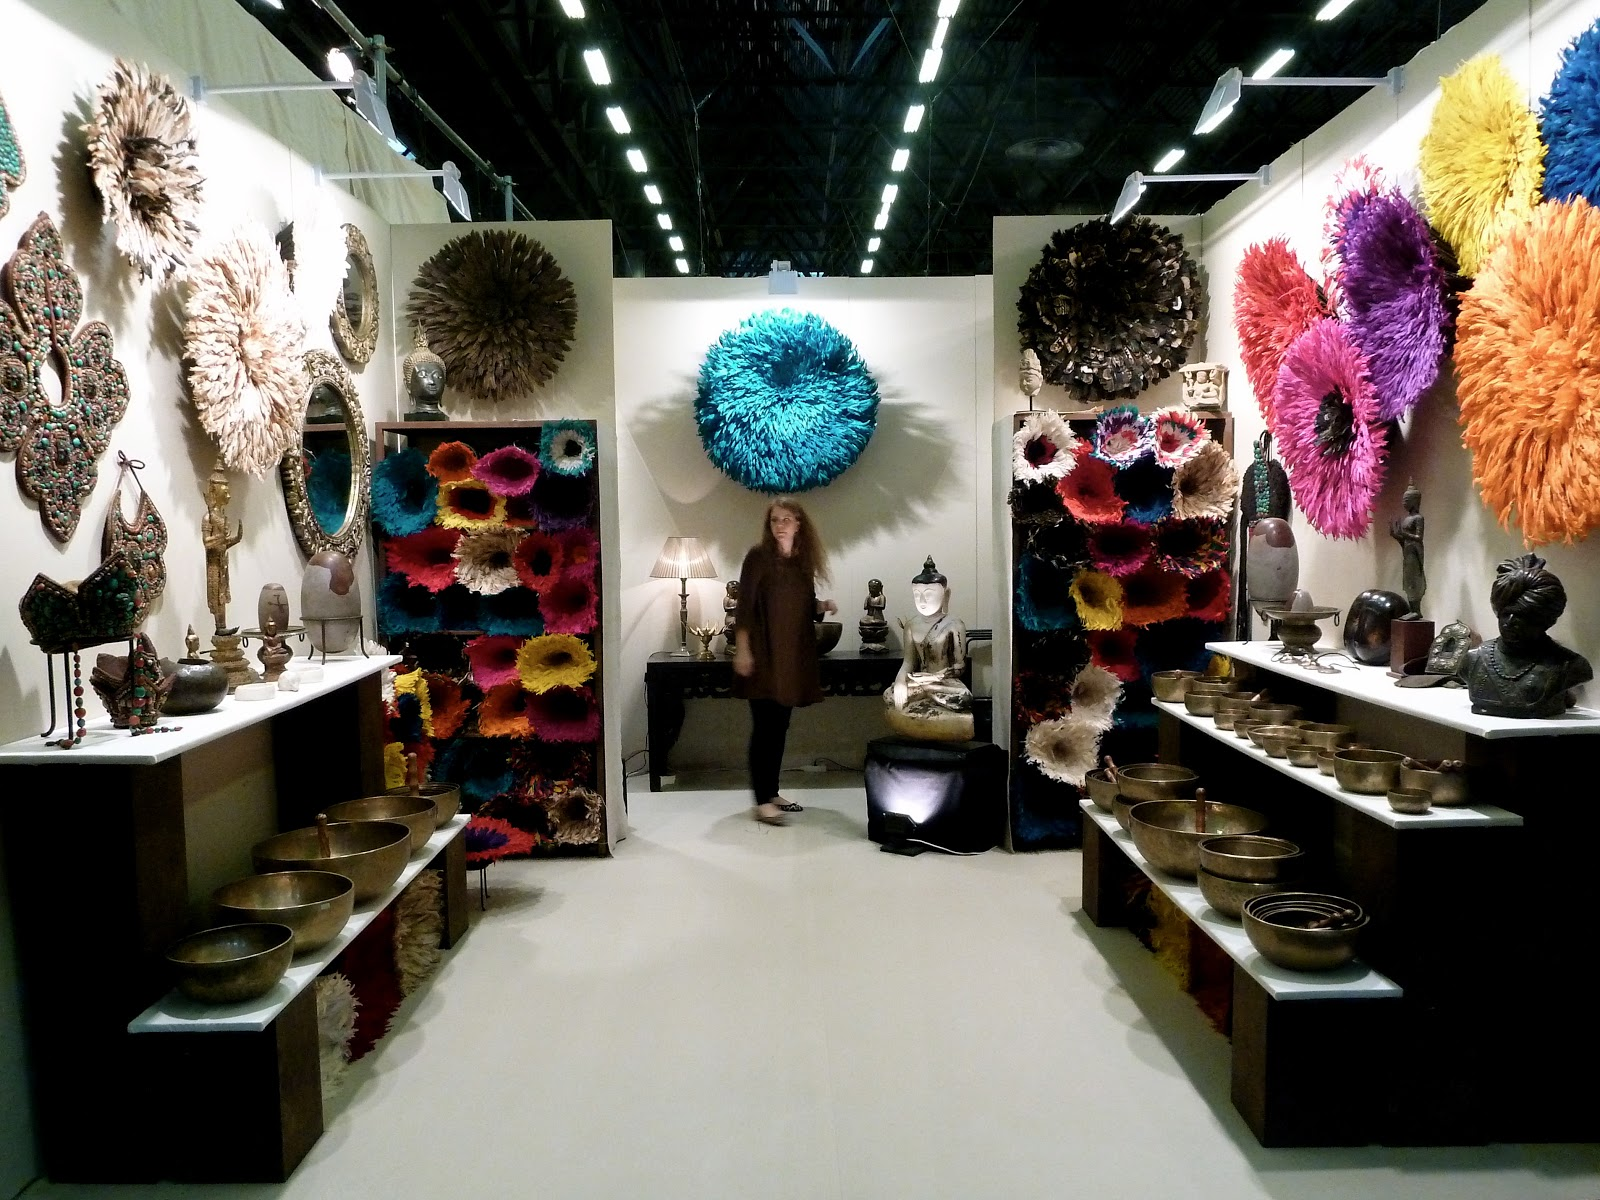 Kronbali juju hats maison objet paris - Maison and objet paris ...